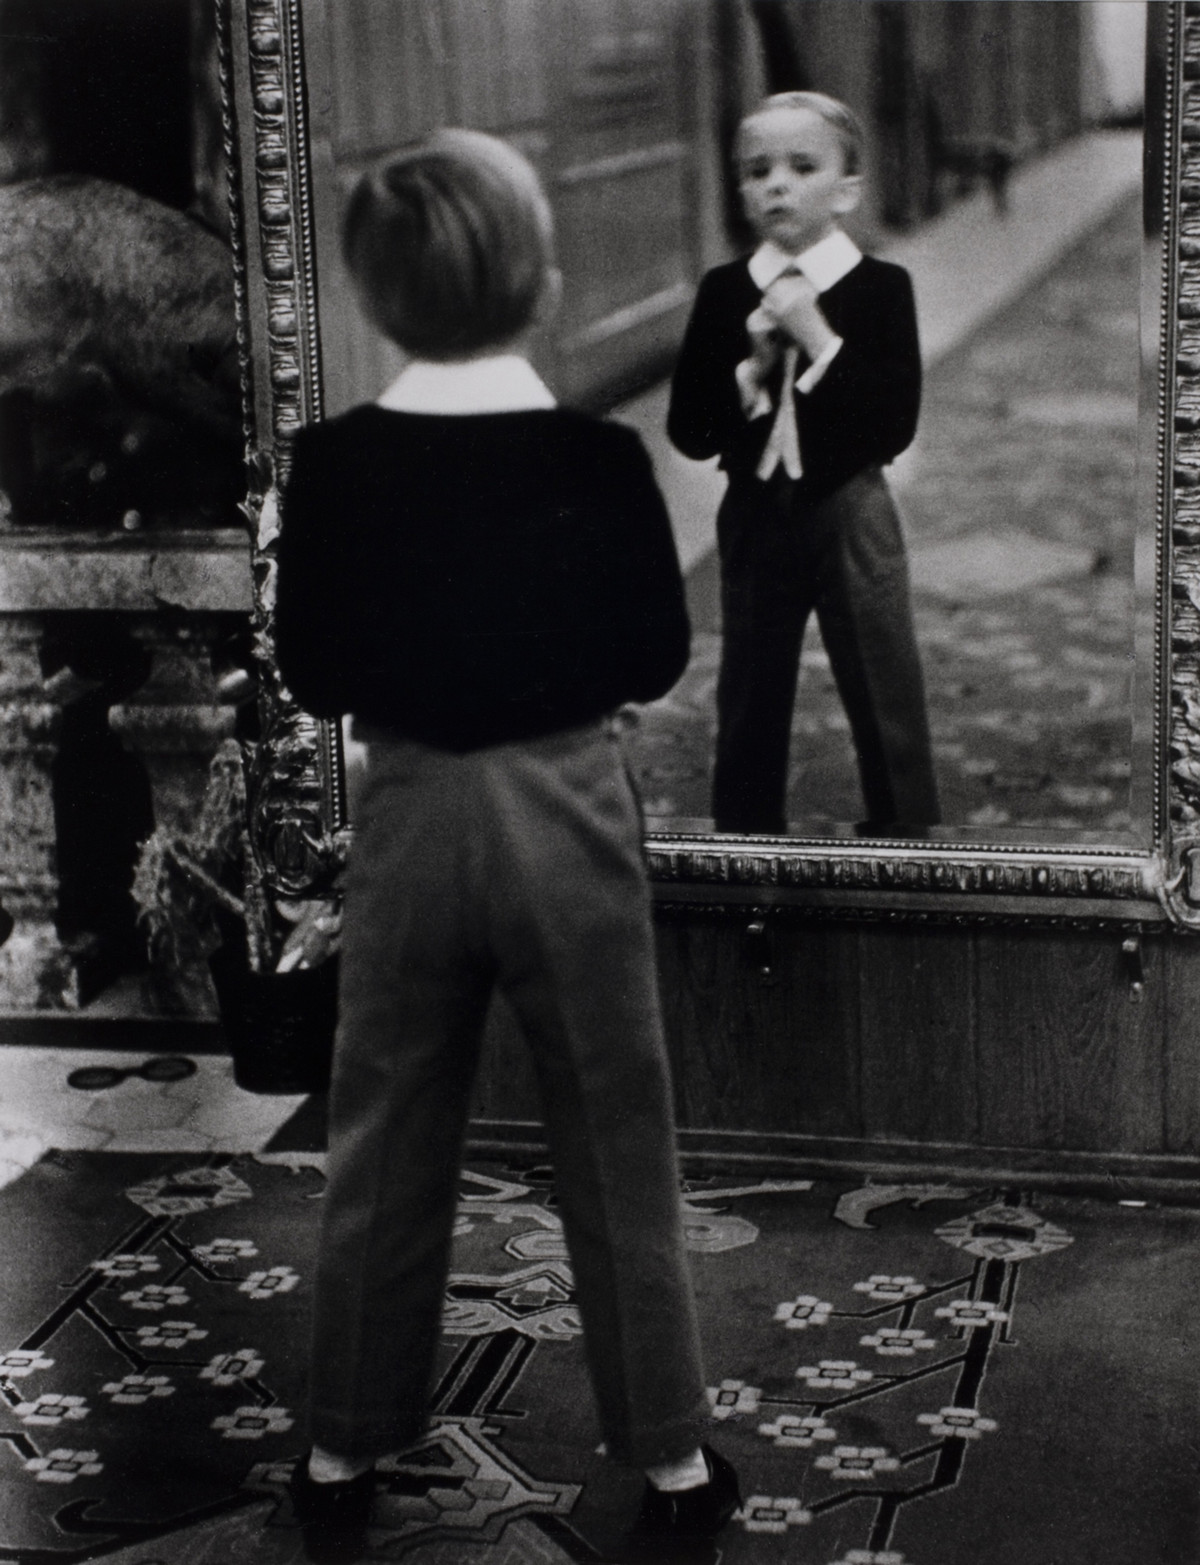 A young Englishman looks at himself in the mirror of the Grand Hotel in St. Moritz, Switzerland, 1932.